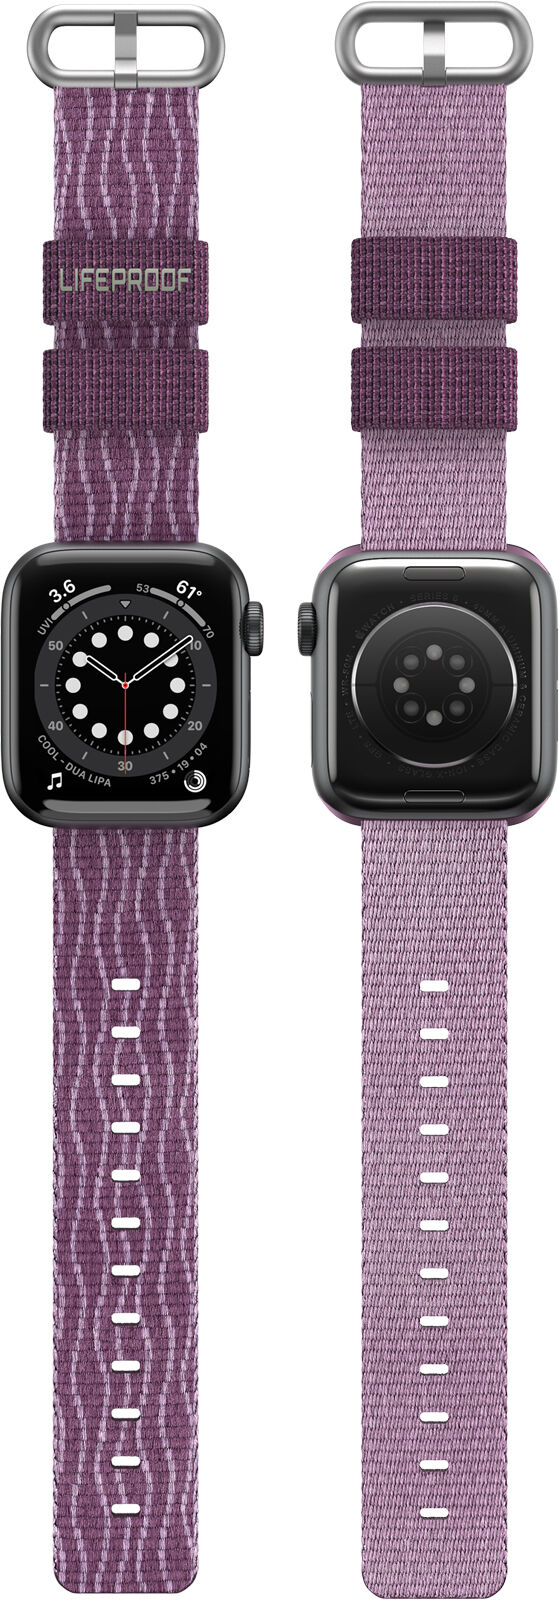 LifeProof Eco-Friendly Pasek Materiałowy do Apple Watch (45 mm) / Apple Watch (44 mm) / Apple Watch (42 mm) (Ocean Amulet)